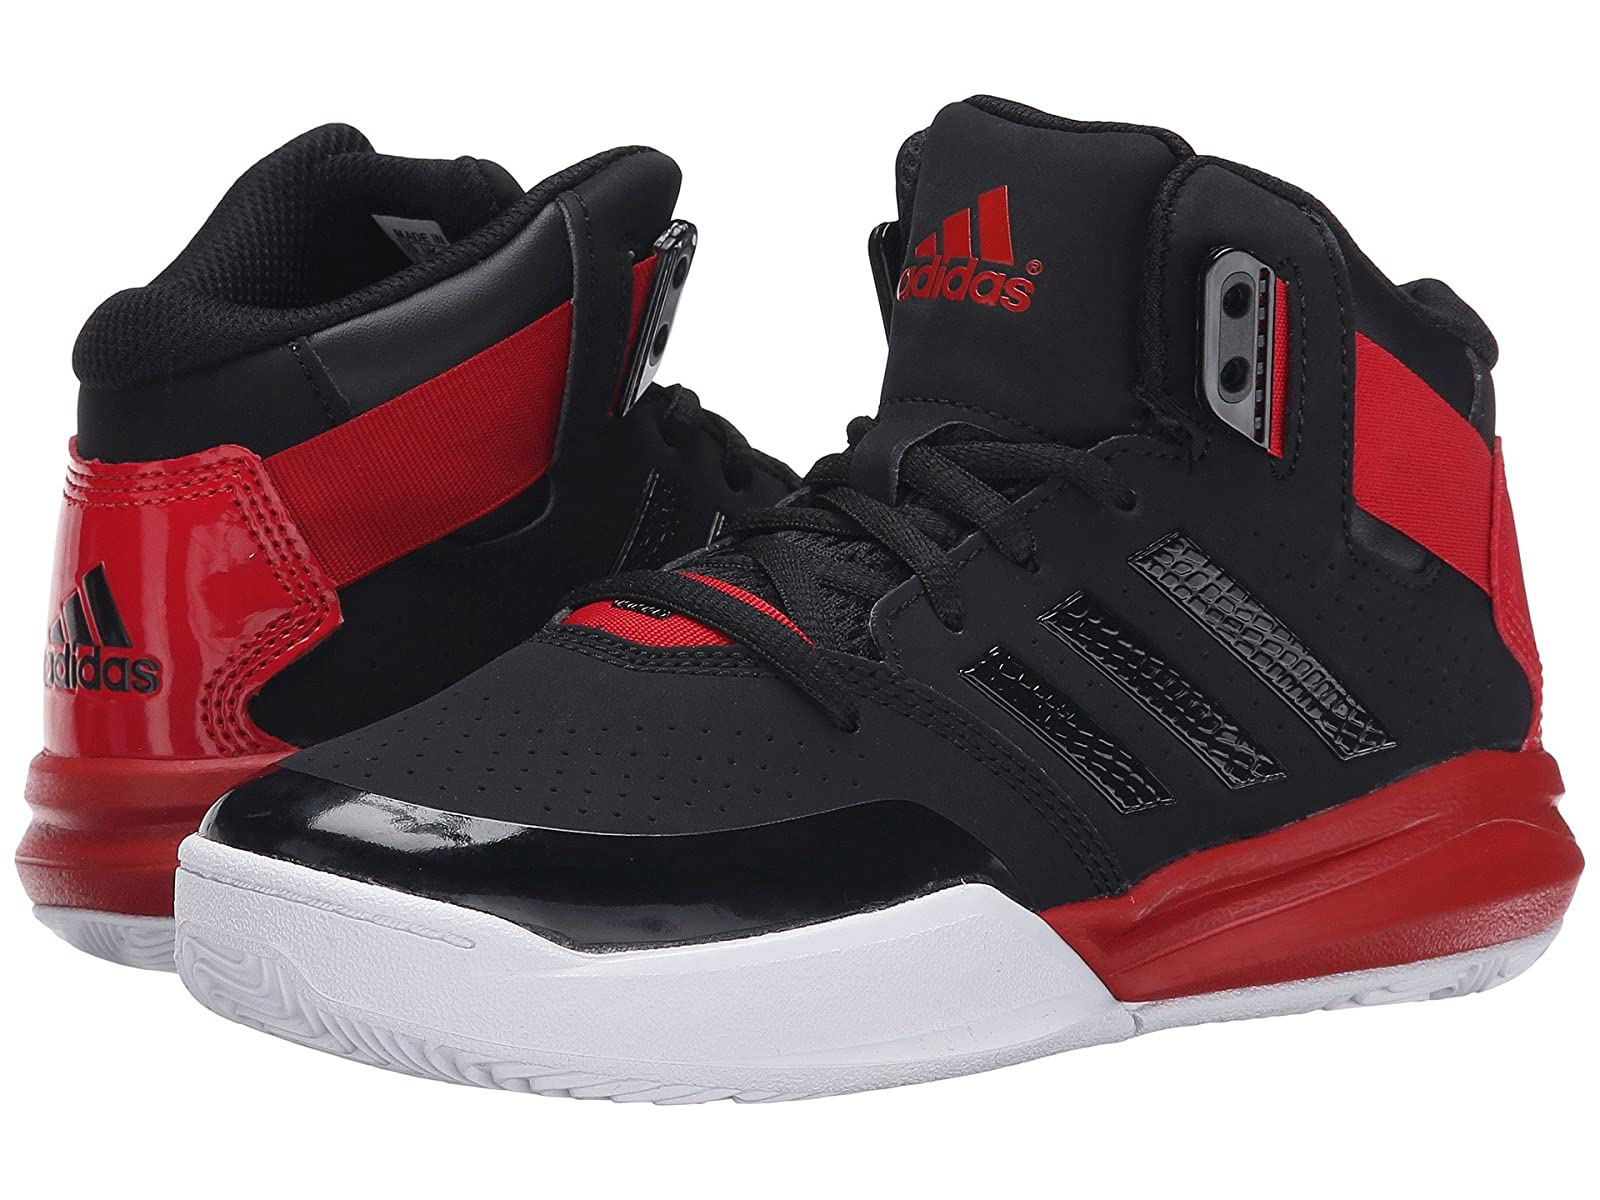 adidas Kids Outrival 2 K (Little Kid/Big Kid)Stylish and characteristic shoes